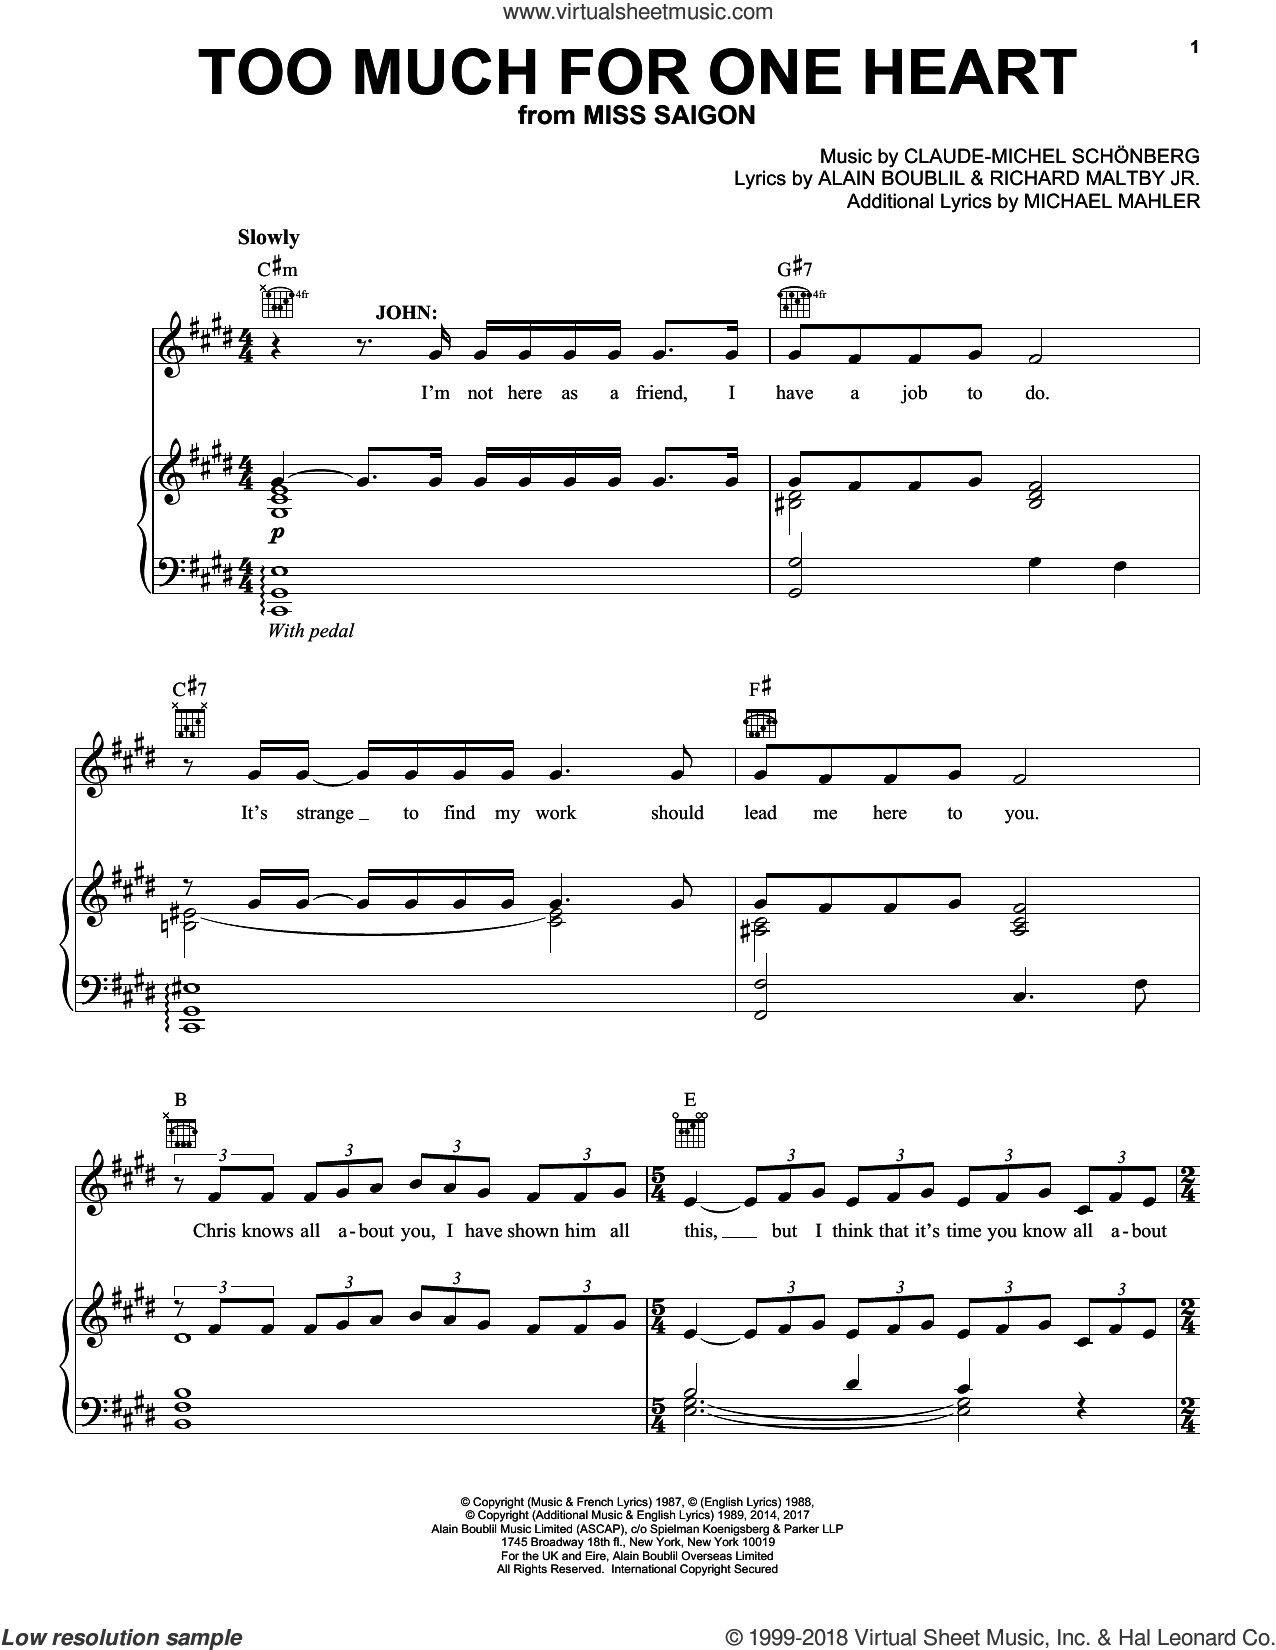 Too Much For One Heart (from Miss Saigon) sheet music for voice, piano or guitar by Claude-Michel Schonberg, Alain Boublil, Boublil and Schonberg, Claude-Michel Schonberg, Michael Mahler and Richard Maltby, Jr., intermediate skill level